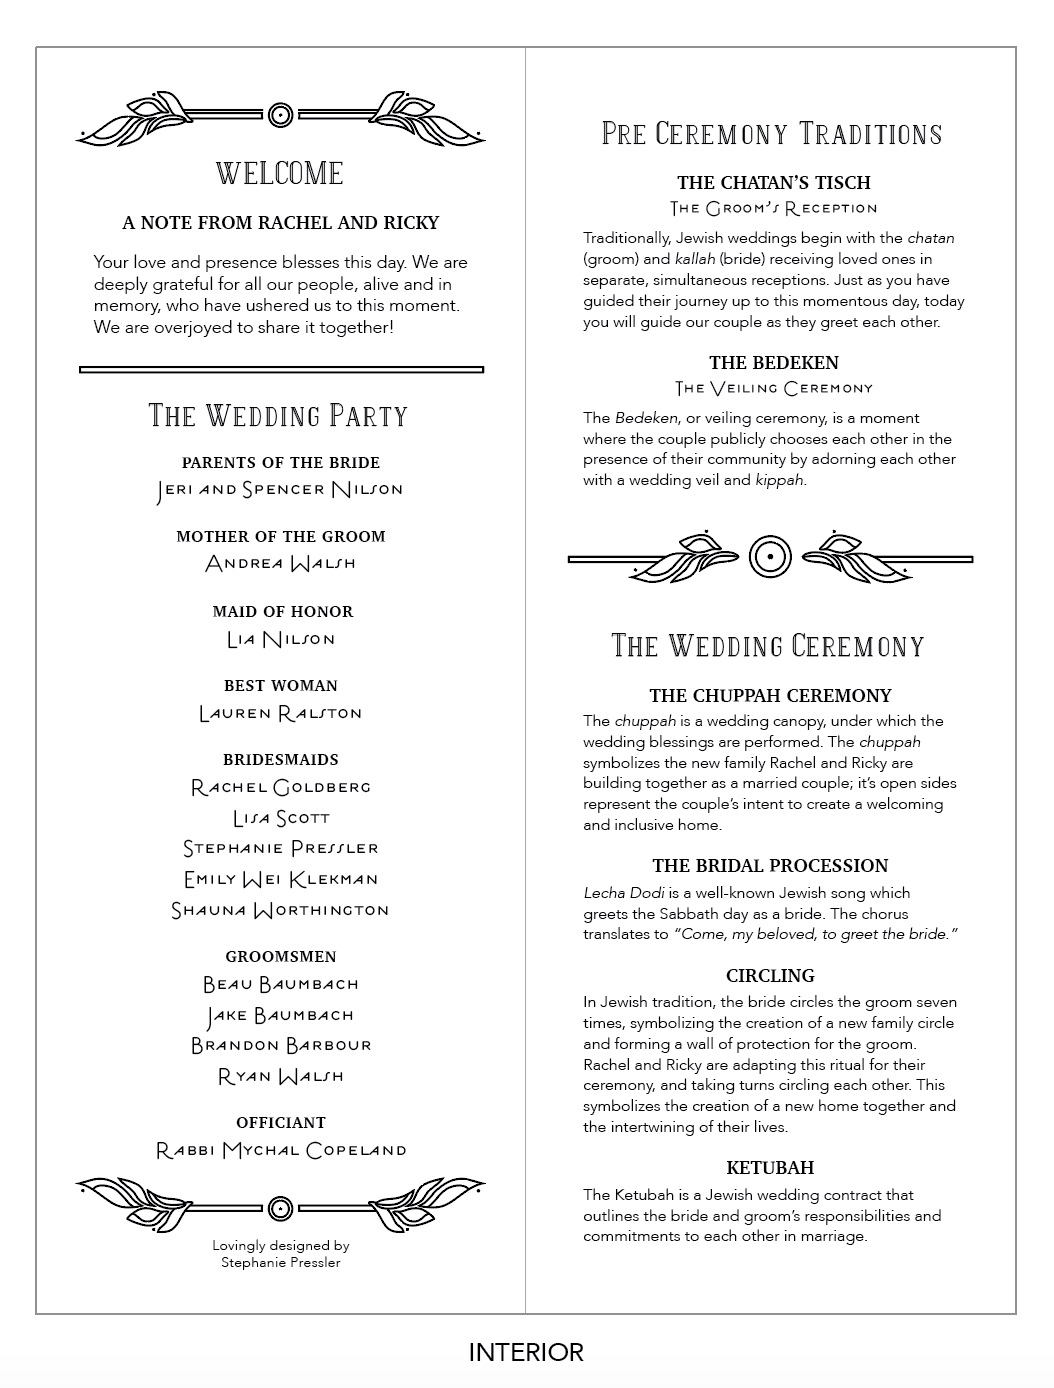 The full layout of the wedding program